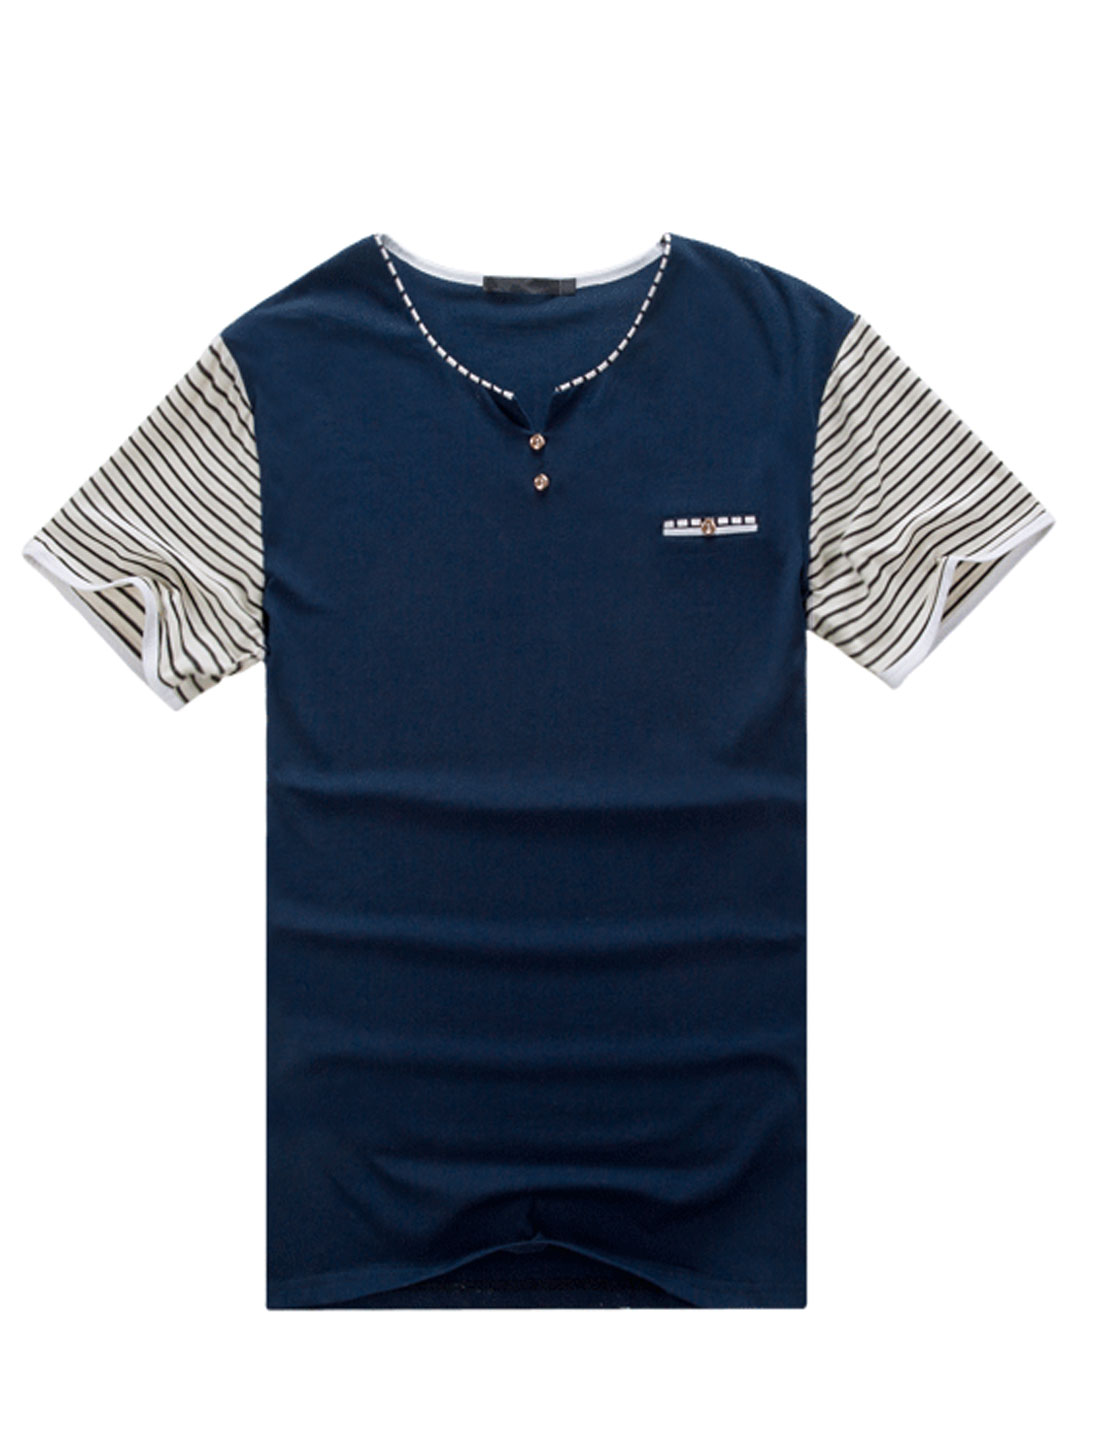 Men Stripes Split Neck Mock Chest Pocket Leisure Tee Shirt Navy Blue